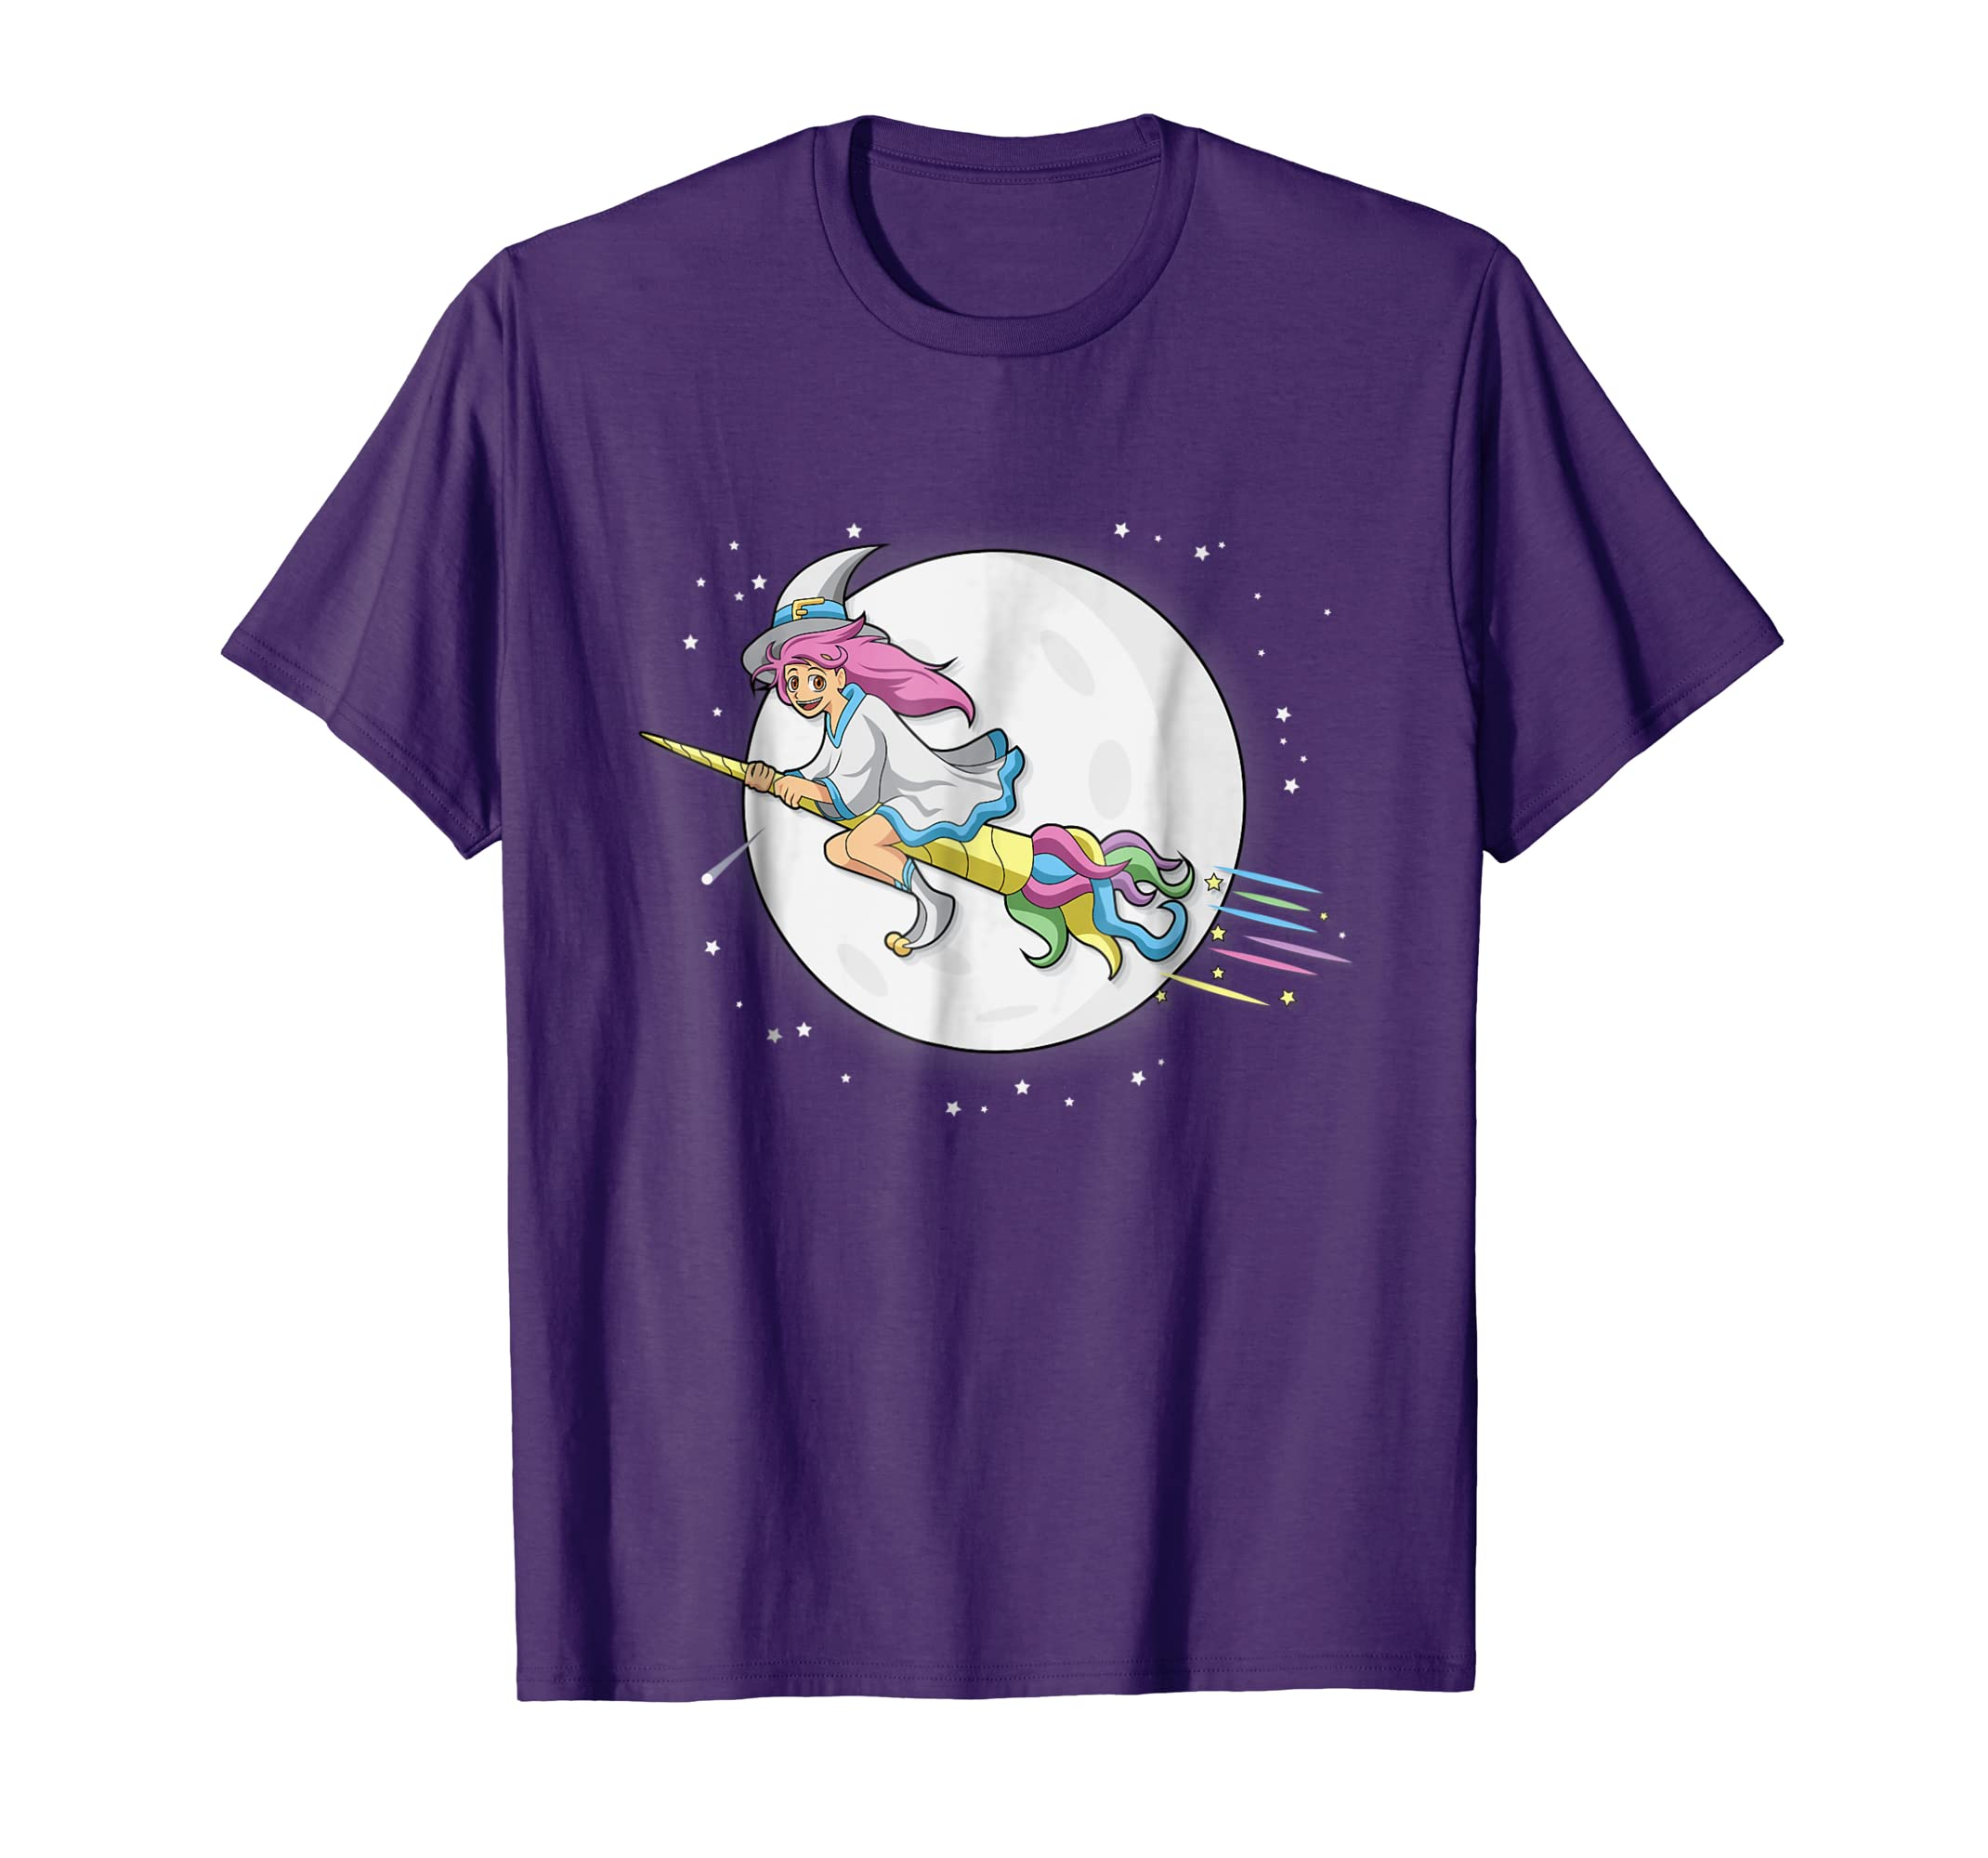 Anime Girl T Shirt Cute Witch Riding Unicorn Broom Halloween-Teesml